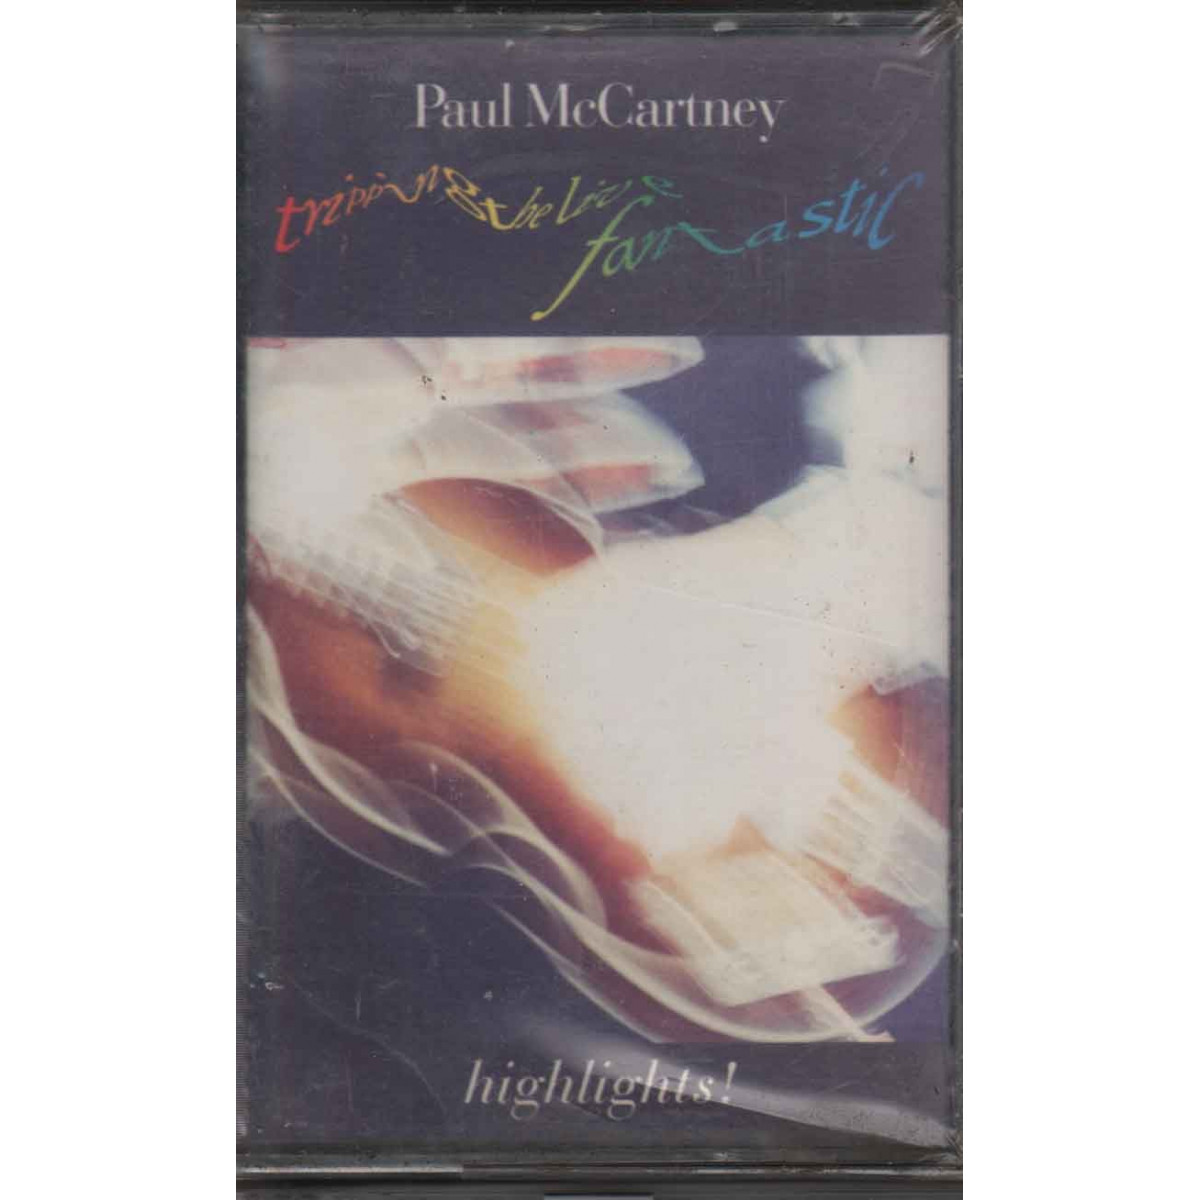 Paul McCartney MC7 Tripping The Live Fantastic - Highlights / EMI MPL Sigillata